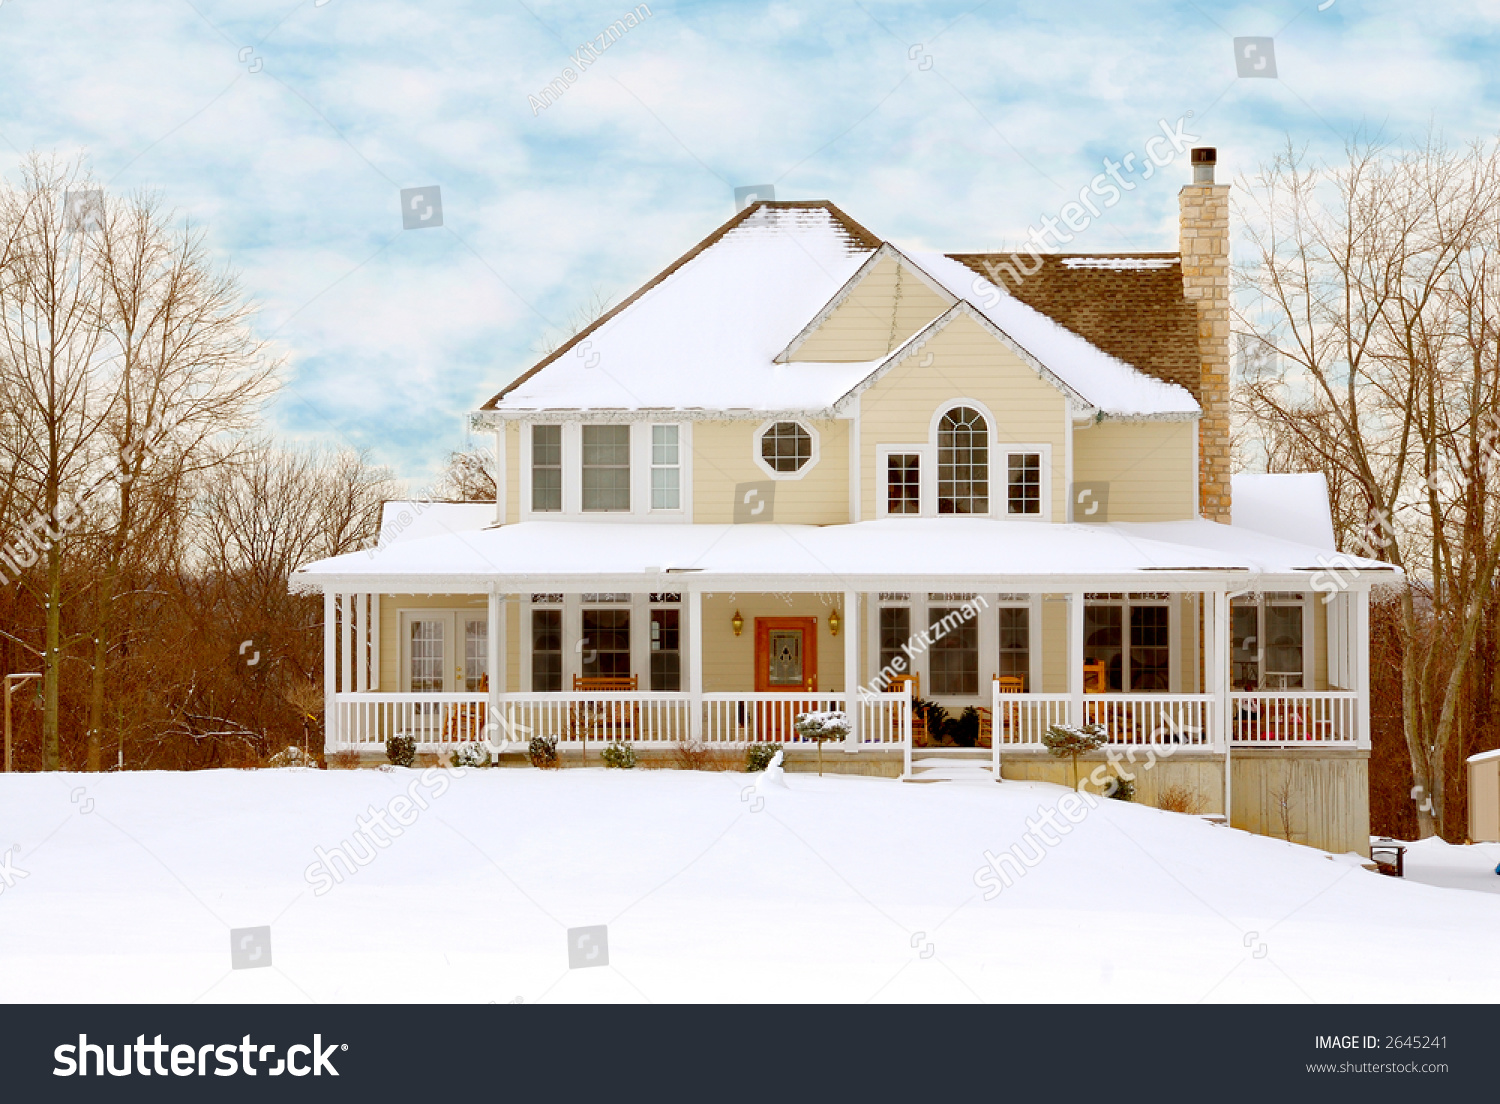 Charming Two Story Farmhouse In The Country On A Snowy